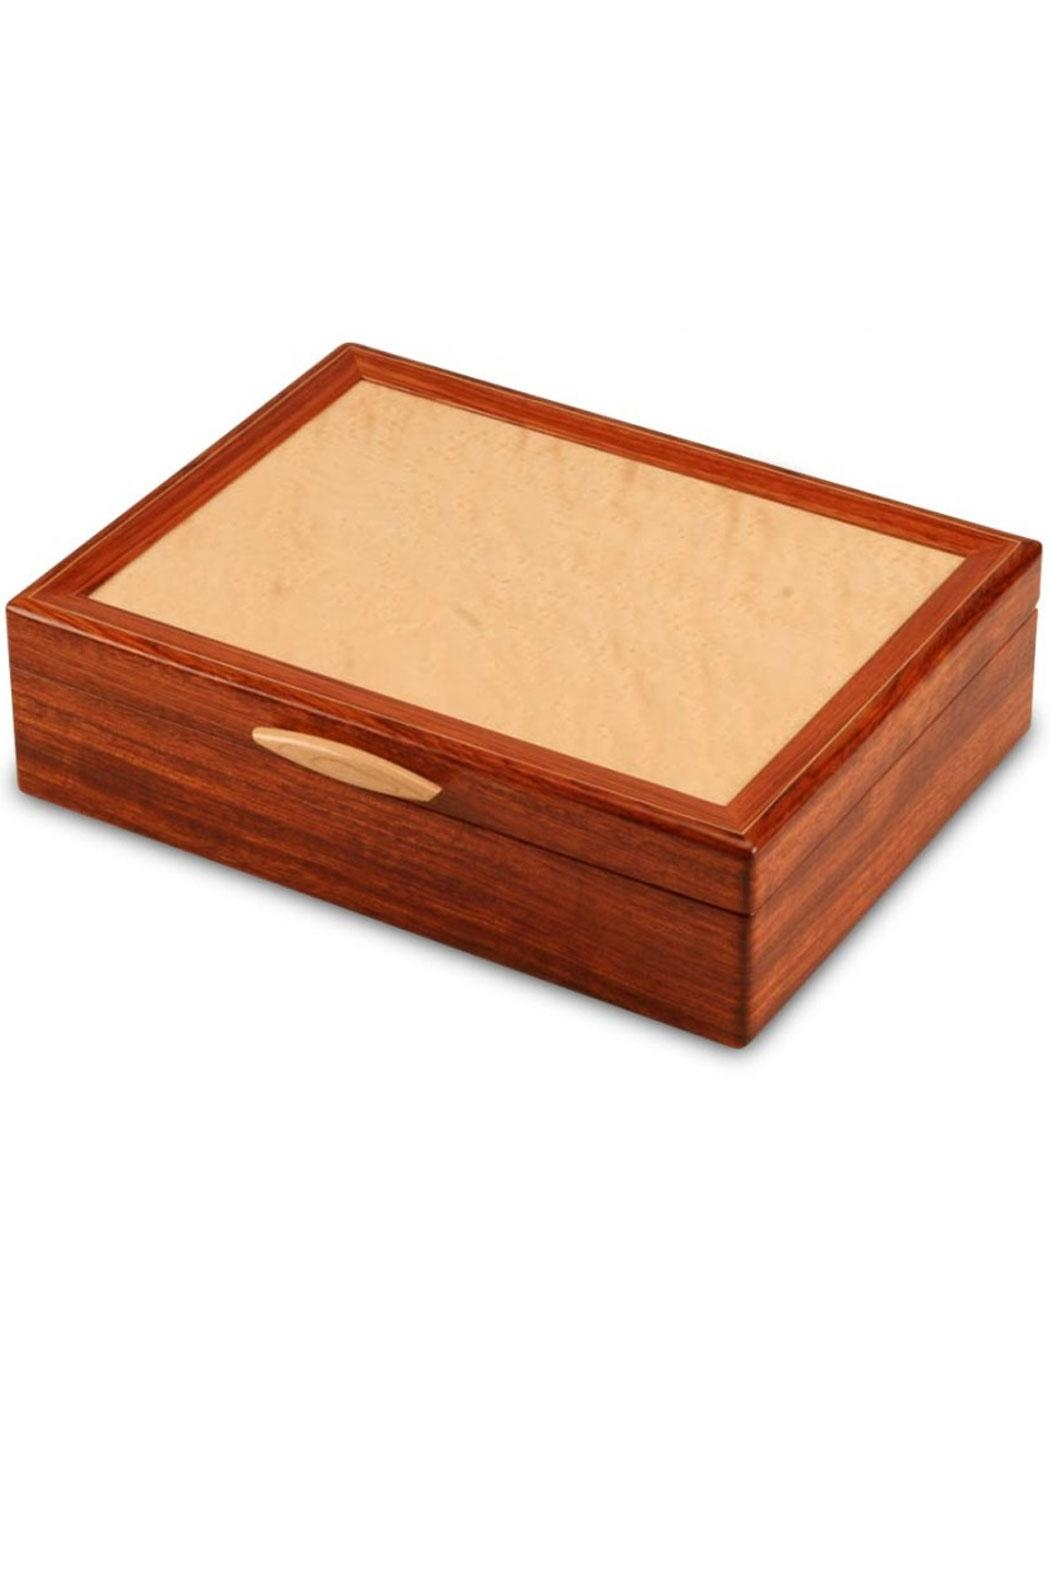 Heartwood Creations Handcrafted Jewelry Box - Main Image